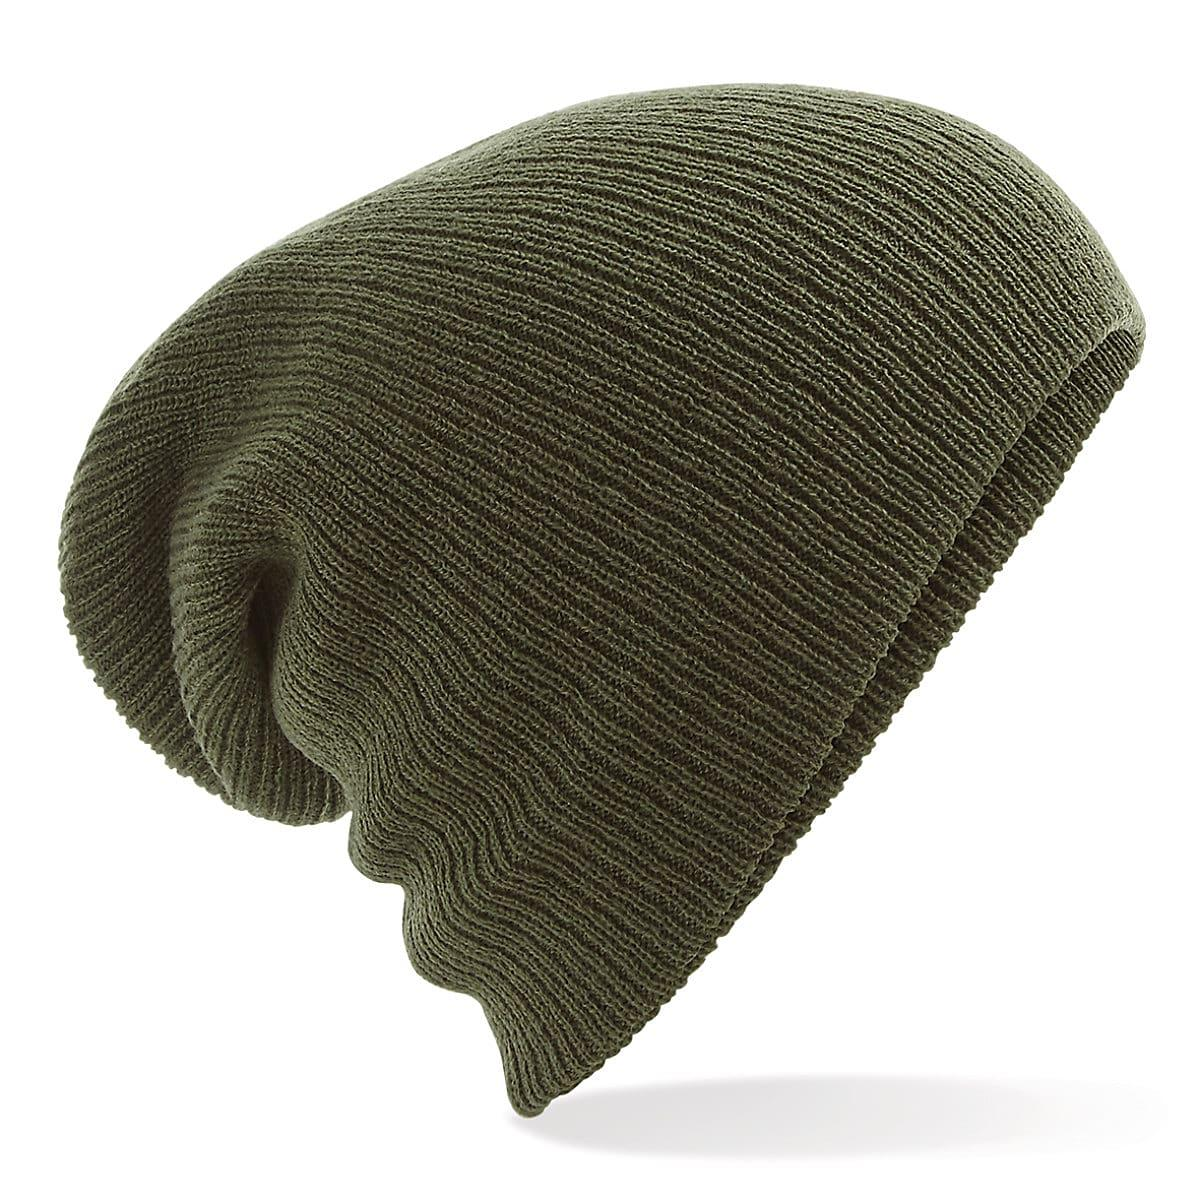 Beechfield Heavy Gauge Slouch Beanie Hat in Olive Green (Product Code: B449)